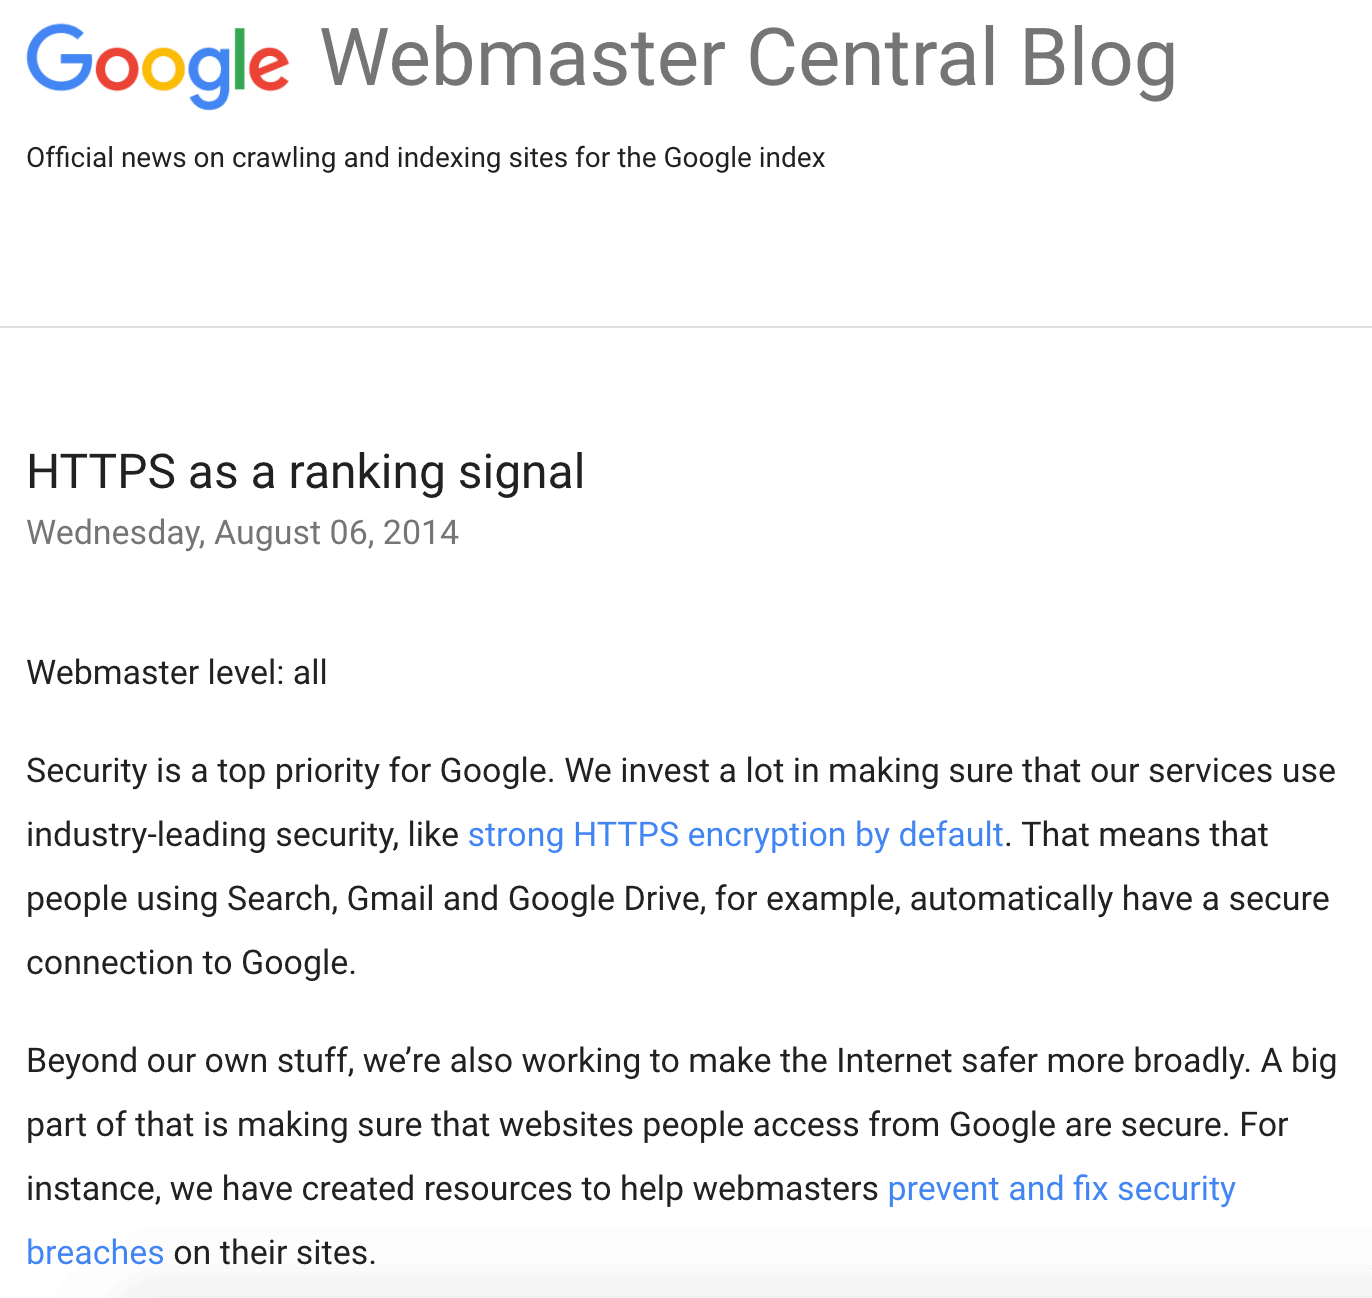 SSL as a ranking signal